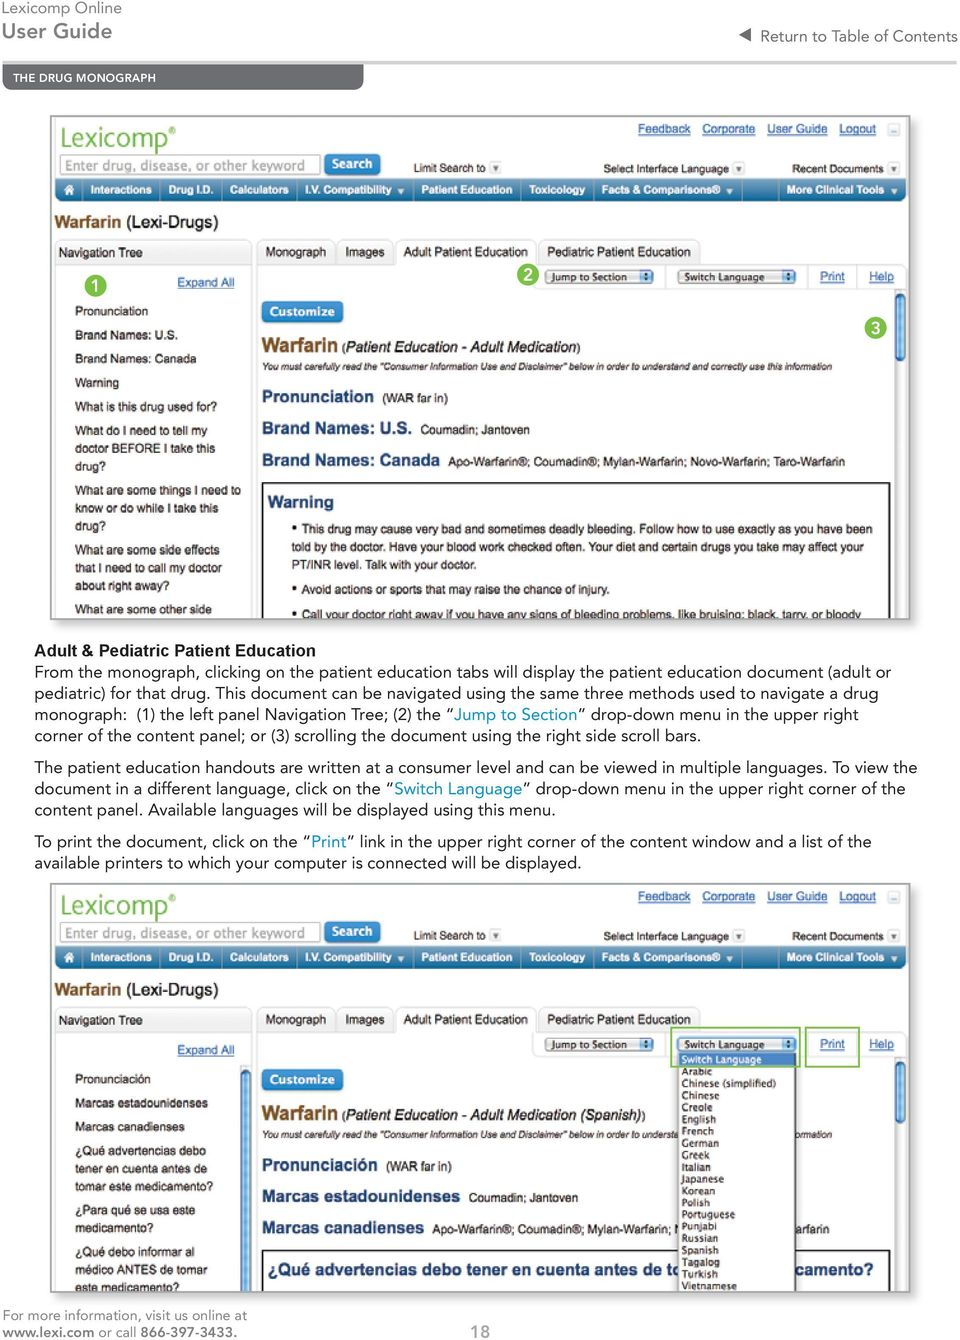 the content panel; or (3) scrolling the document using the right side scroll bars. The patient education handouts are written at a consumer level and can be viewed in multiple languages.